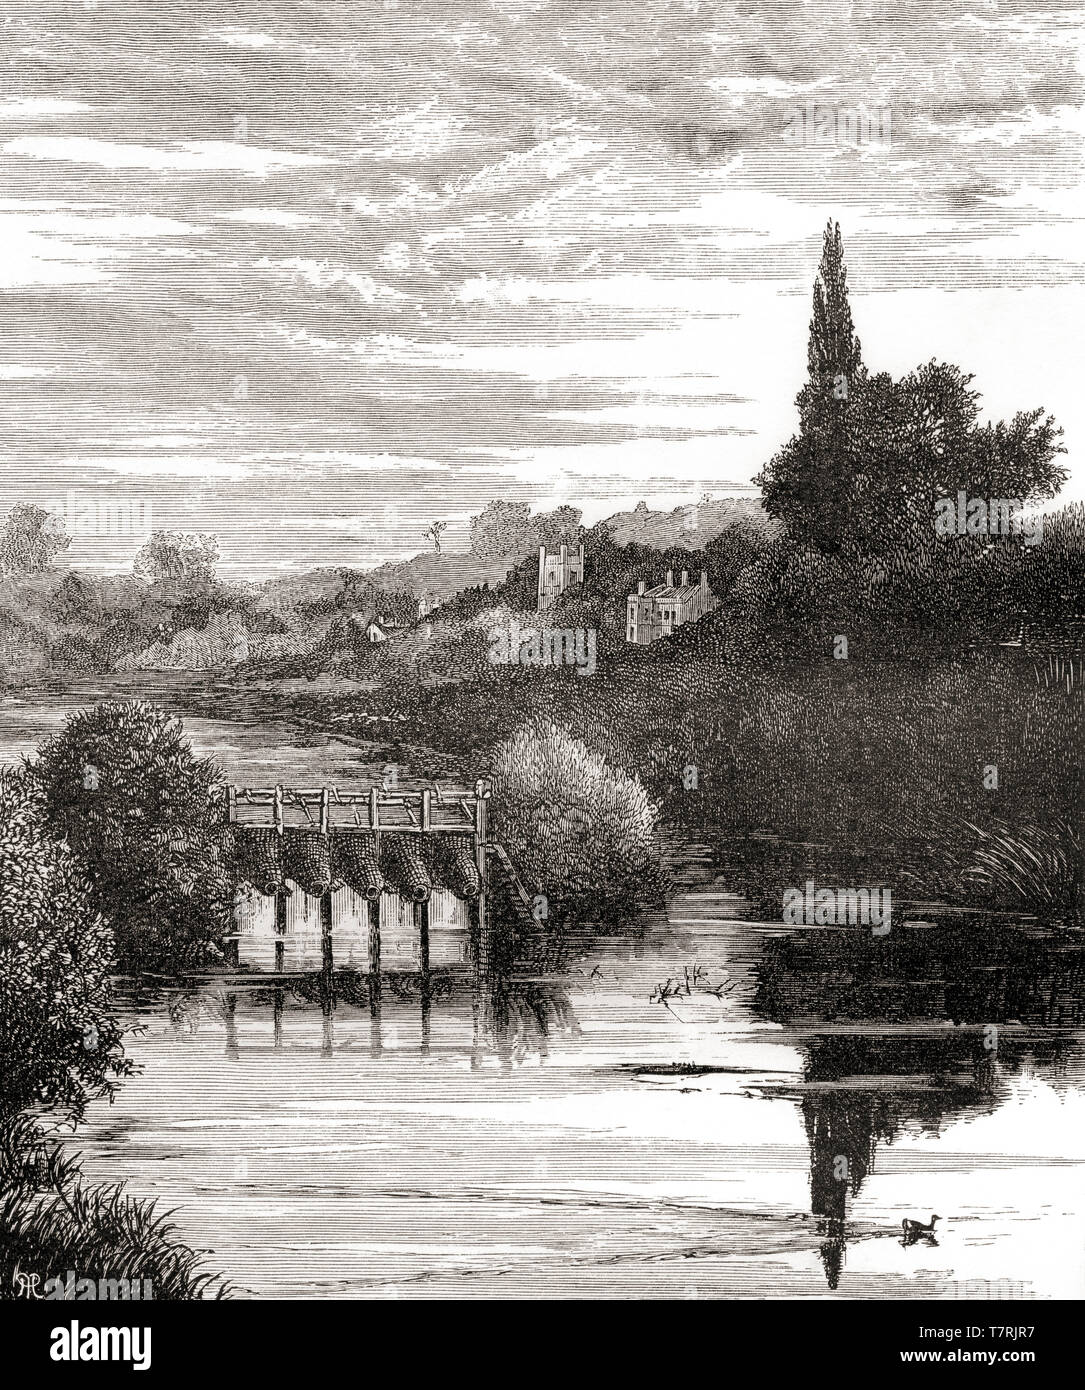 The River Thames at Caversham, Reading, England, seen here in the 19th century.  From English Pictures, published 1890. Stock Photo